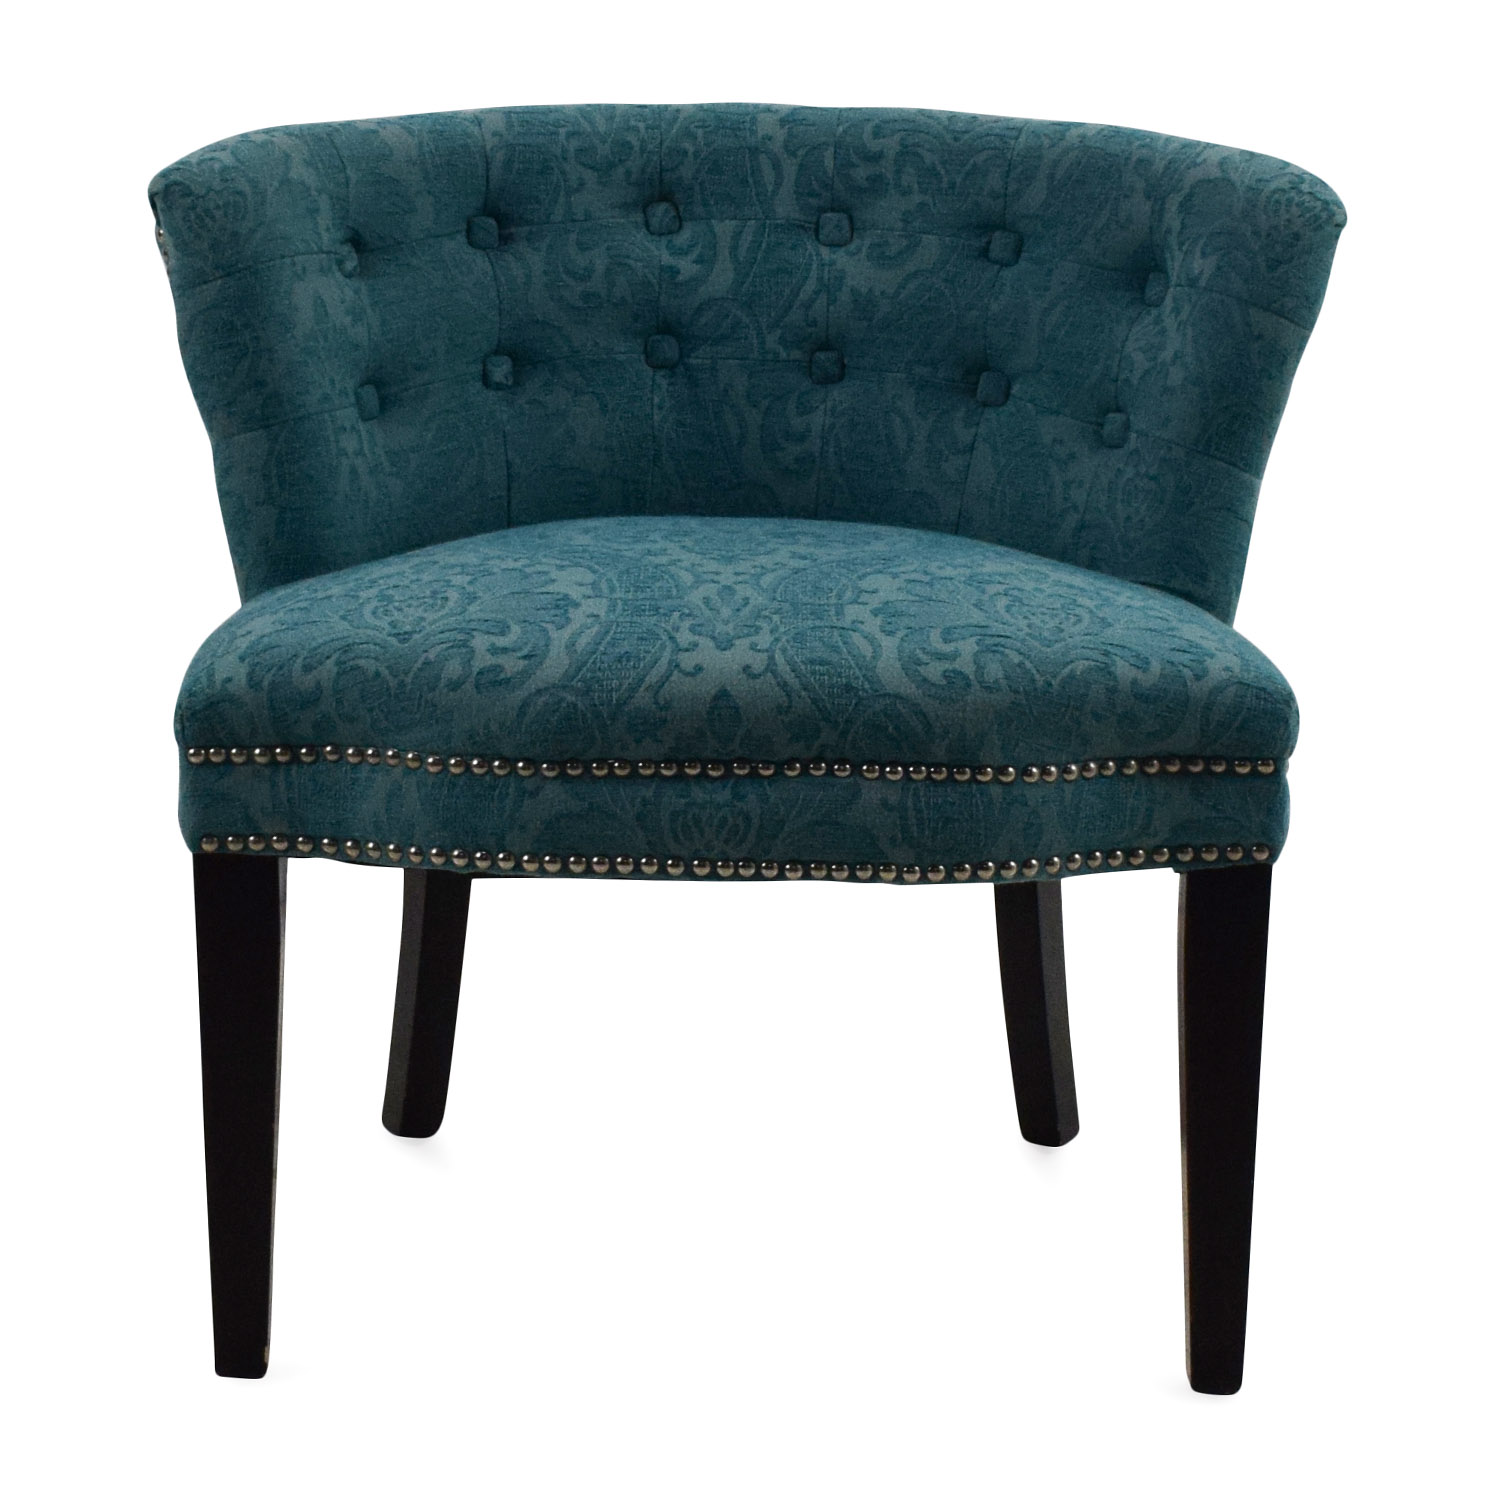 Cynthia Rowley Shabby Chic Chair / Accent Chairs